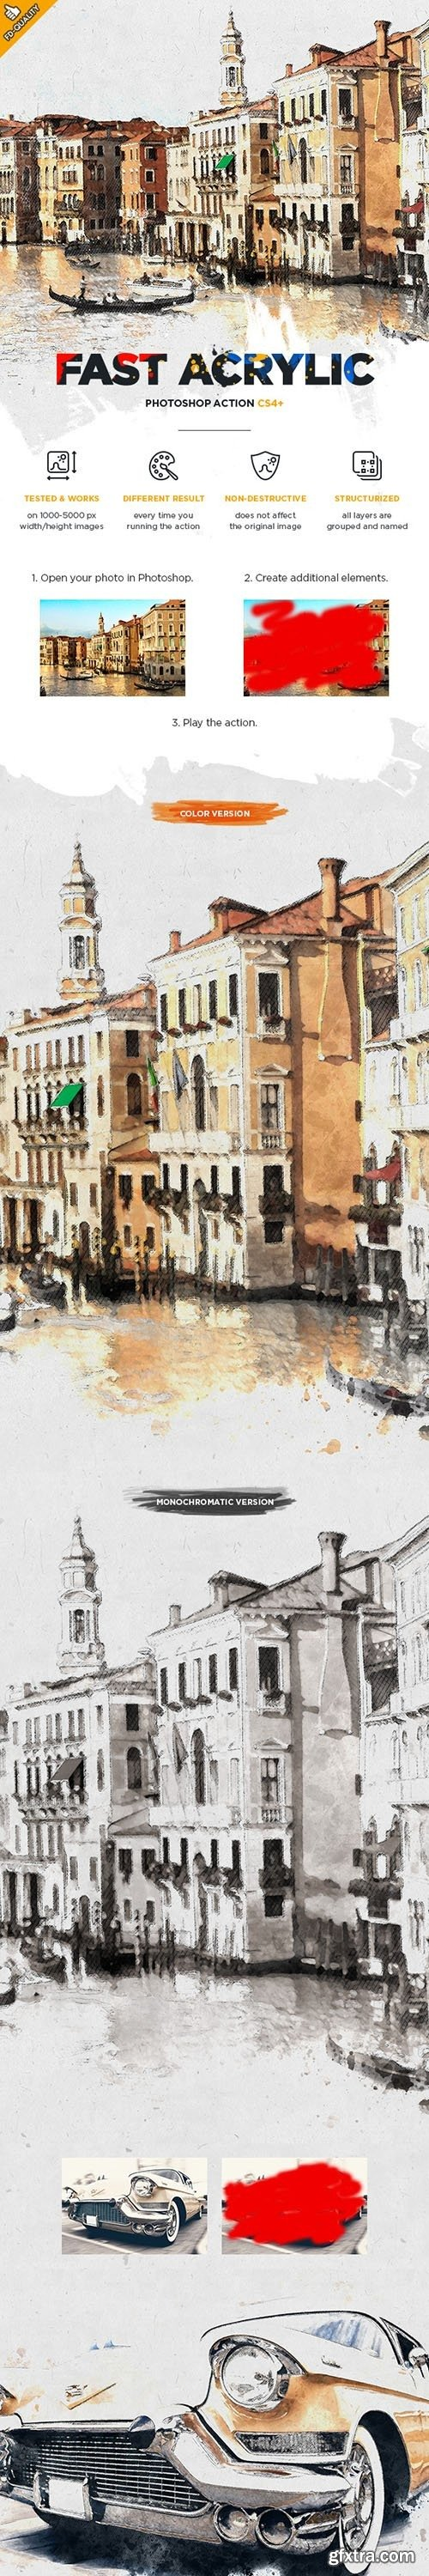 GraphicRiver - Fast Acrylic Sketch CS4+ Photoshop Action 22438094